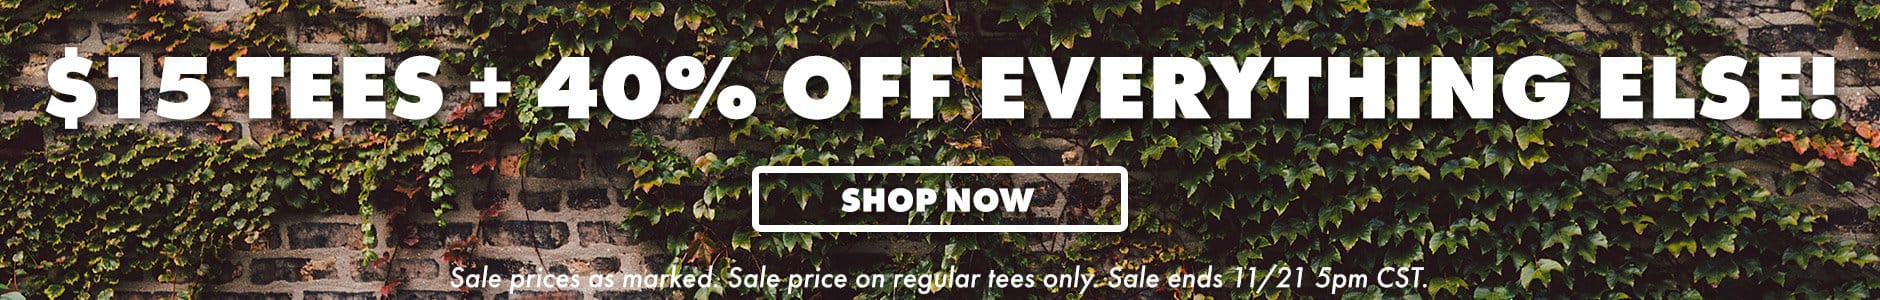 $15 Tees + 40% off everything else! Shop now. Sale prices as marked. Sale price on regular tees only.